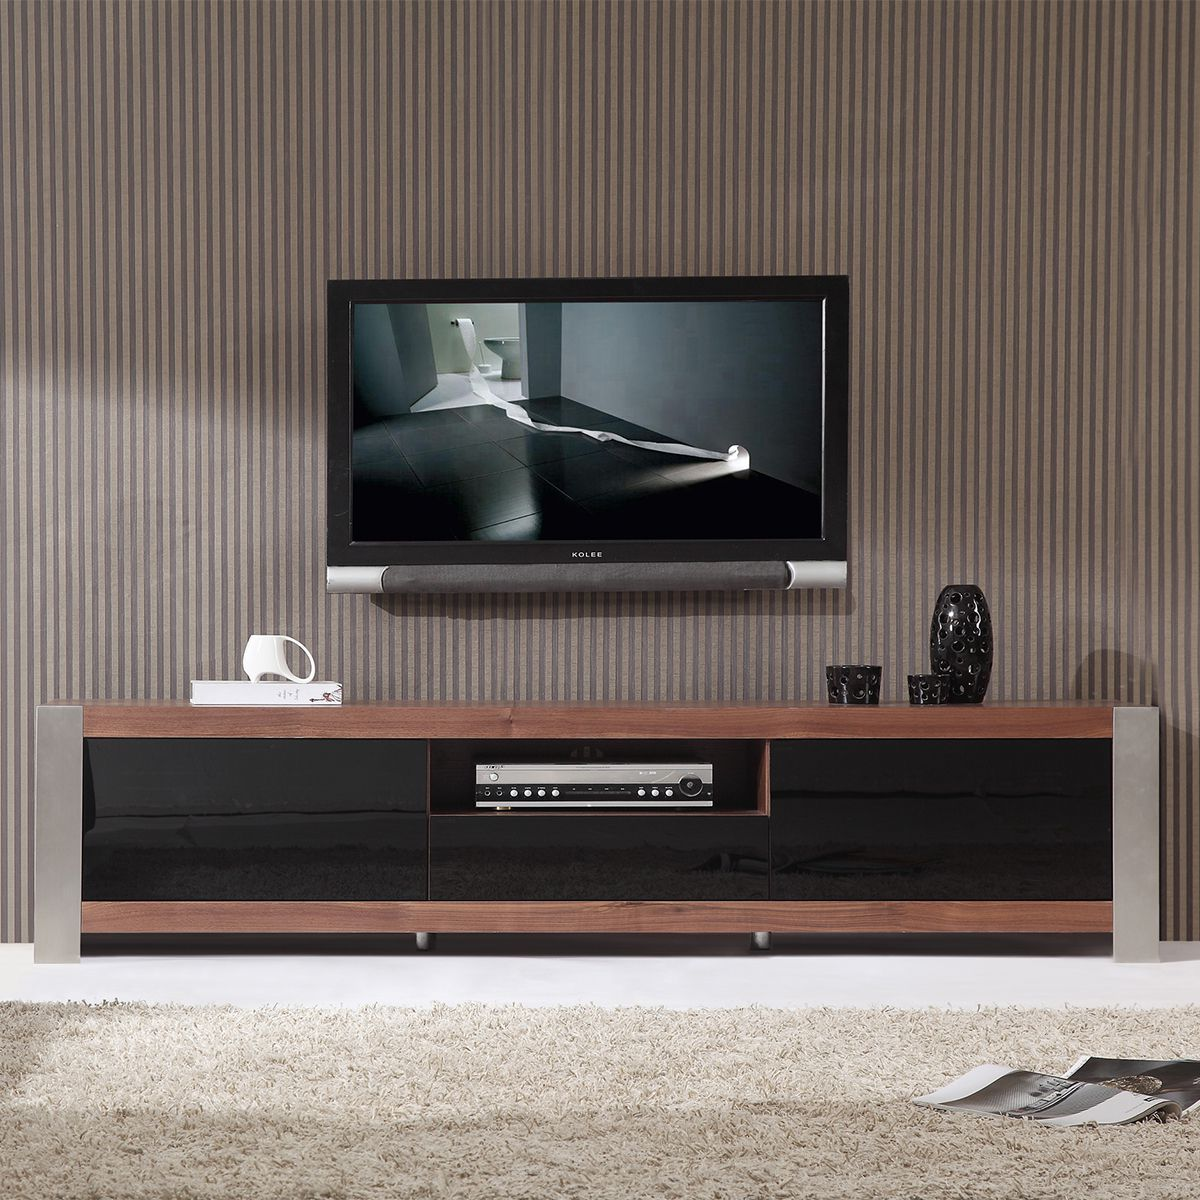 Fantastic Design Of The Contemporary Tv Stands With Grey Wall Added With Grey Rugs Ideas With Black Pots Ideas